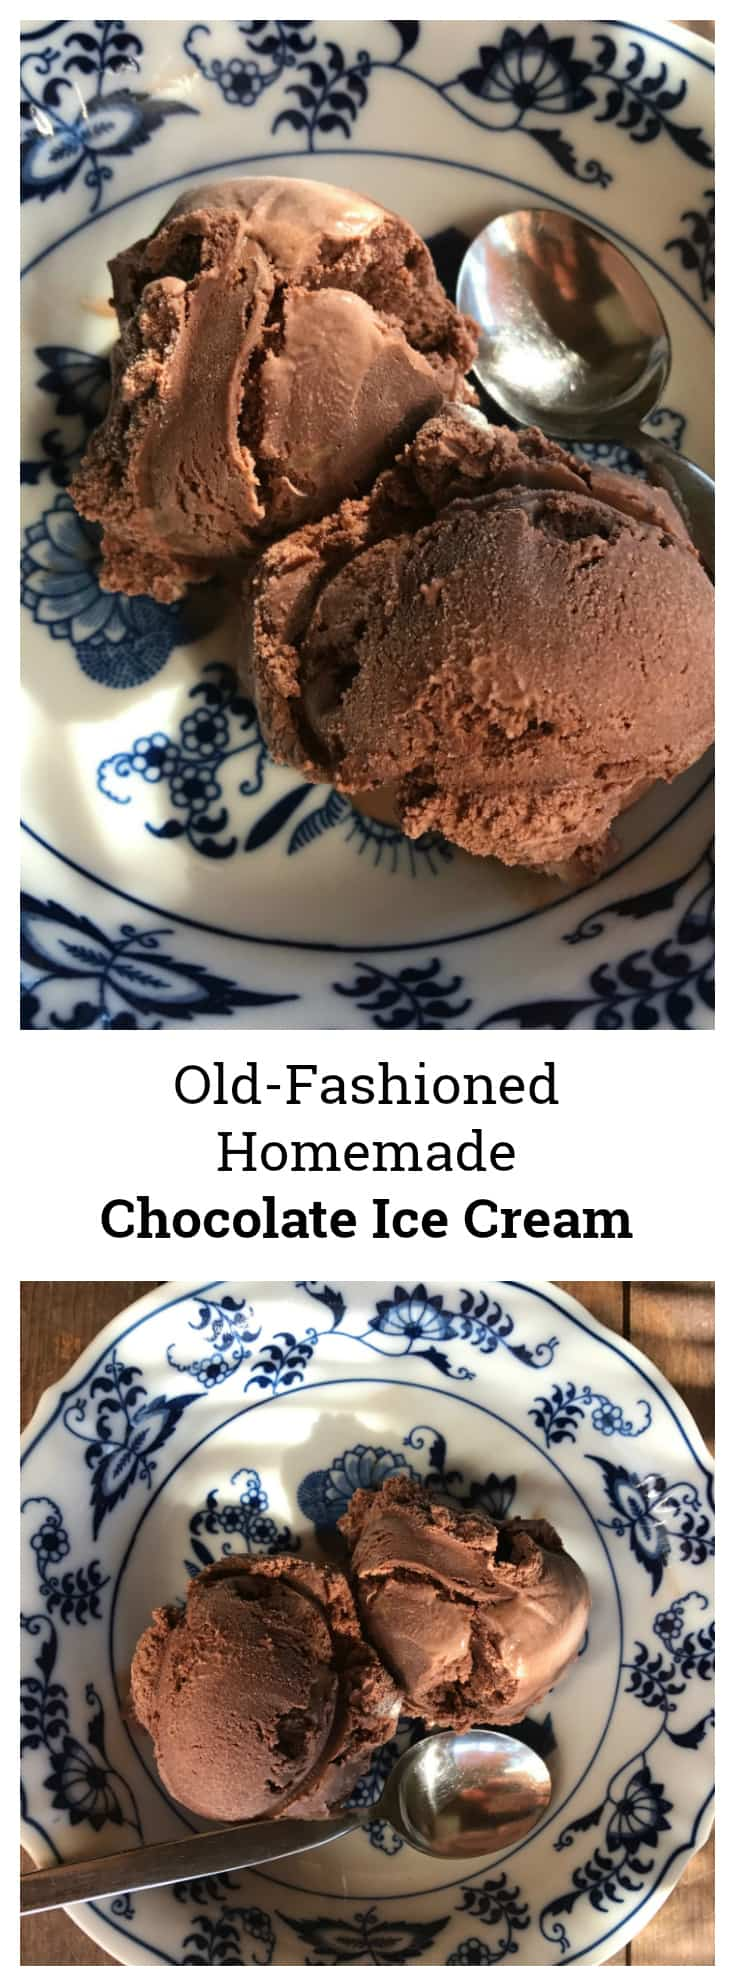 Old-Fashioned Homemade Chocolate Ice Cream - Reluctant Entertainer